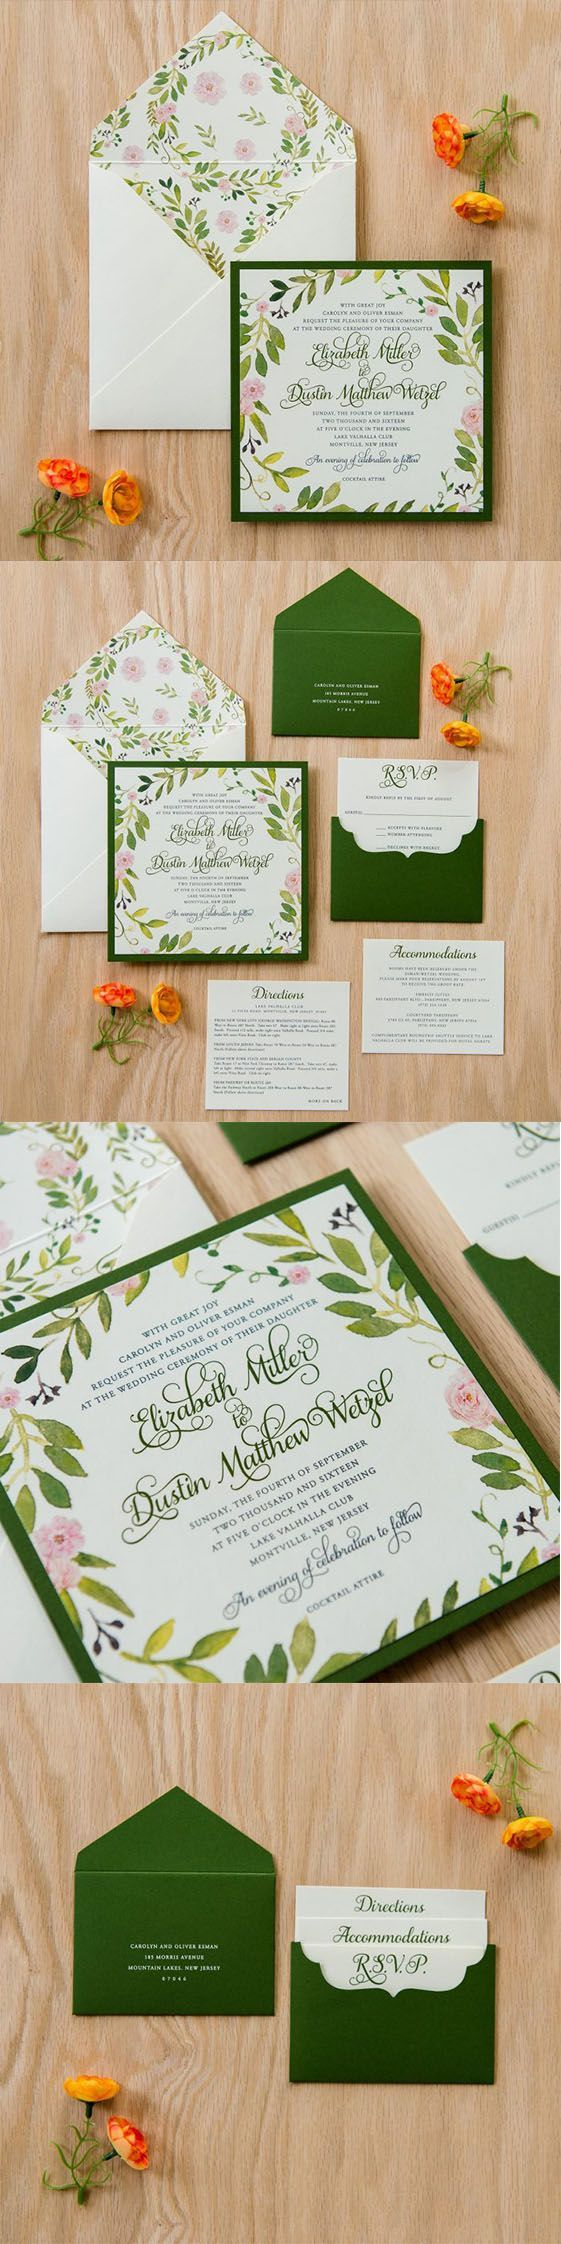 funny wedding invitation rsvp goes viral%0A This perfect mix of floral watercolor and rustic finish allows for a garden  romance themed invitation suite  Tucked inside of this botanic envelope is  a